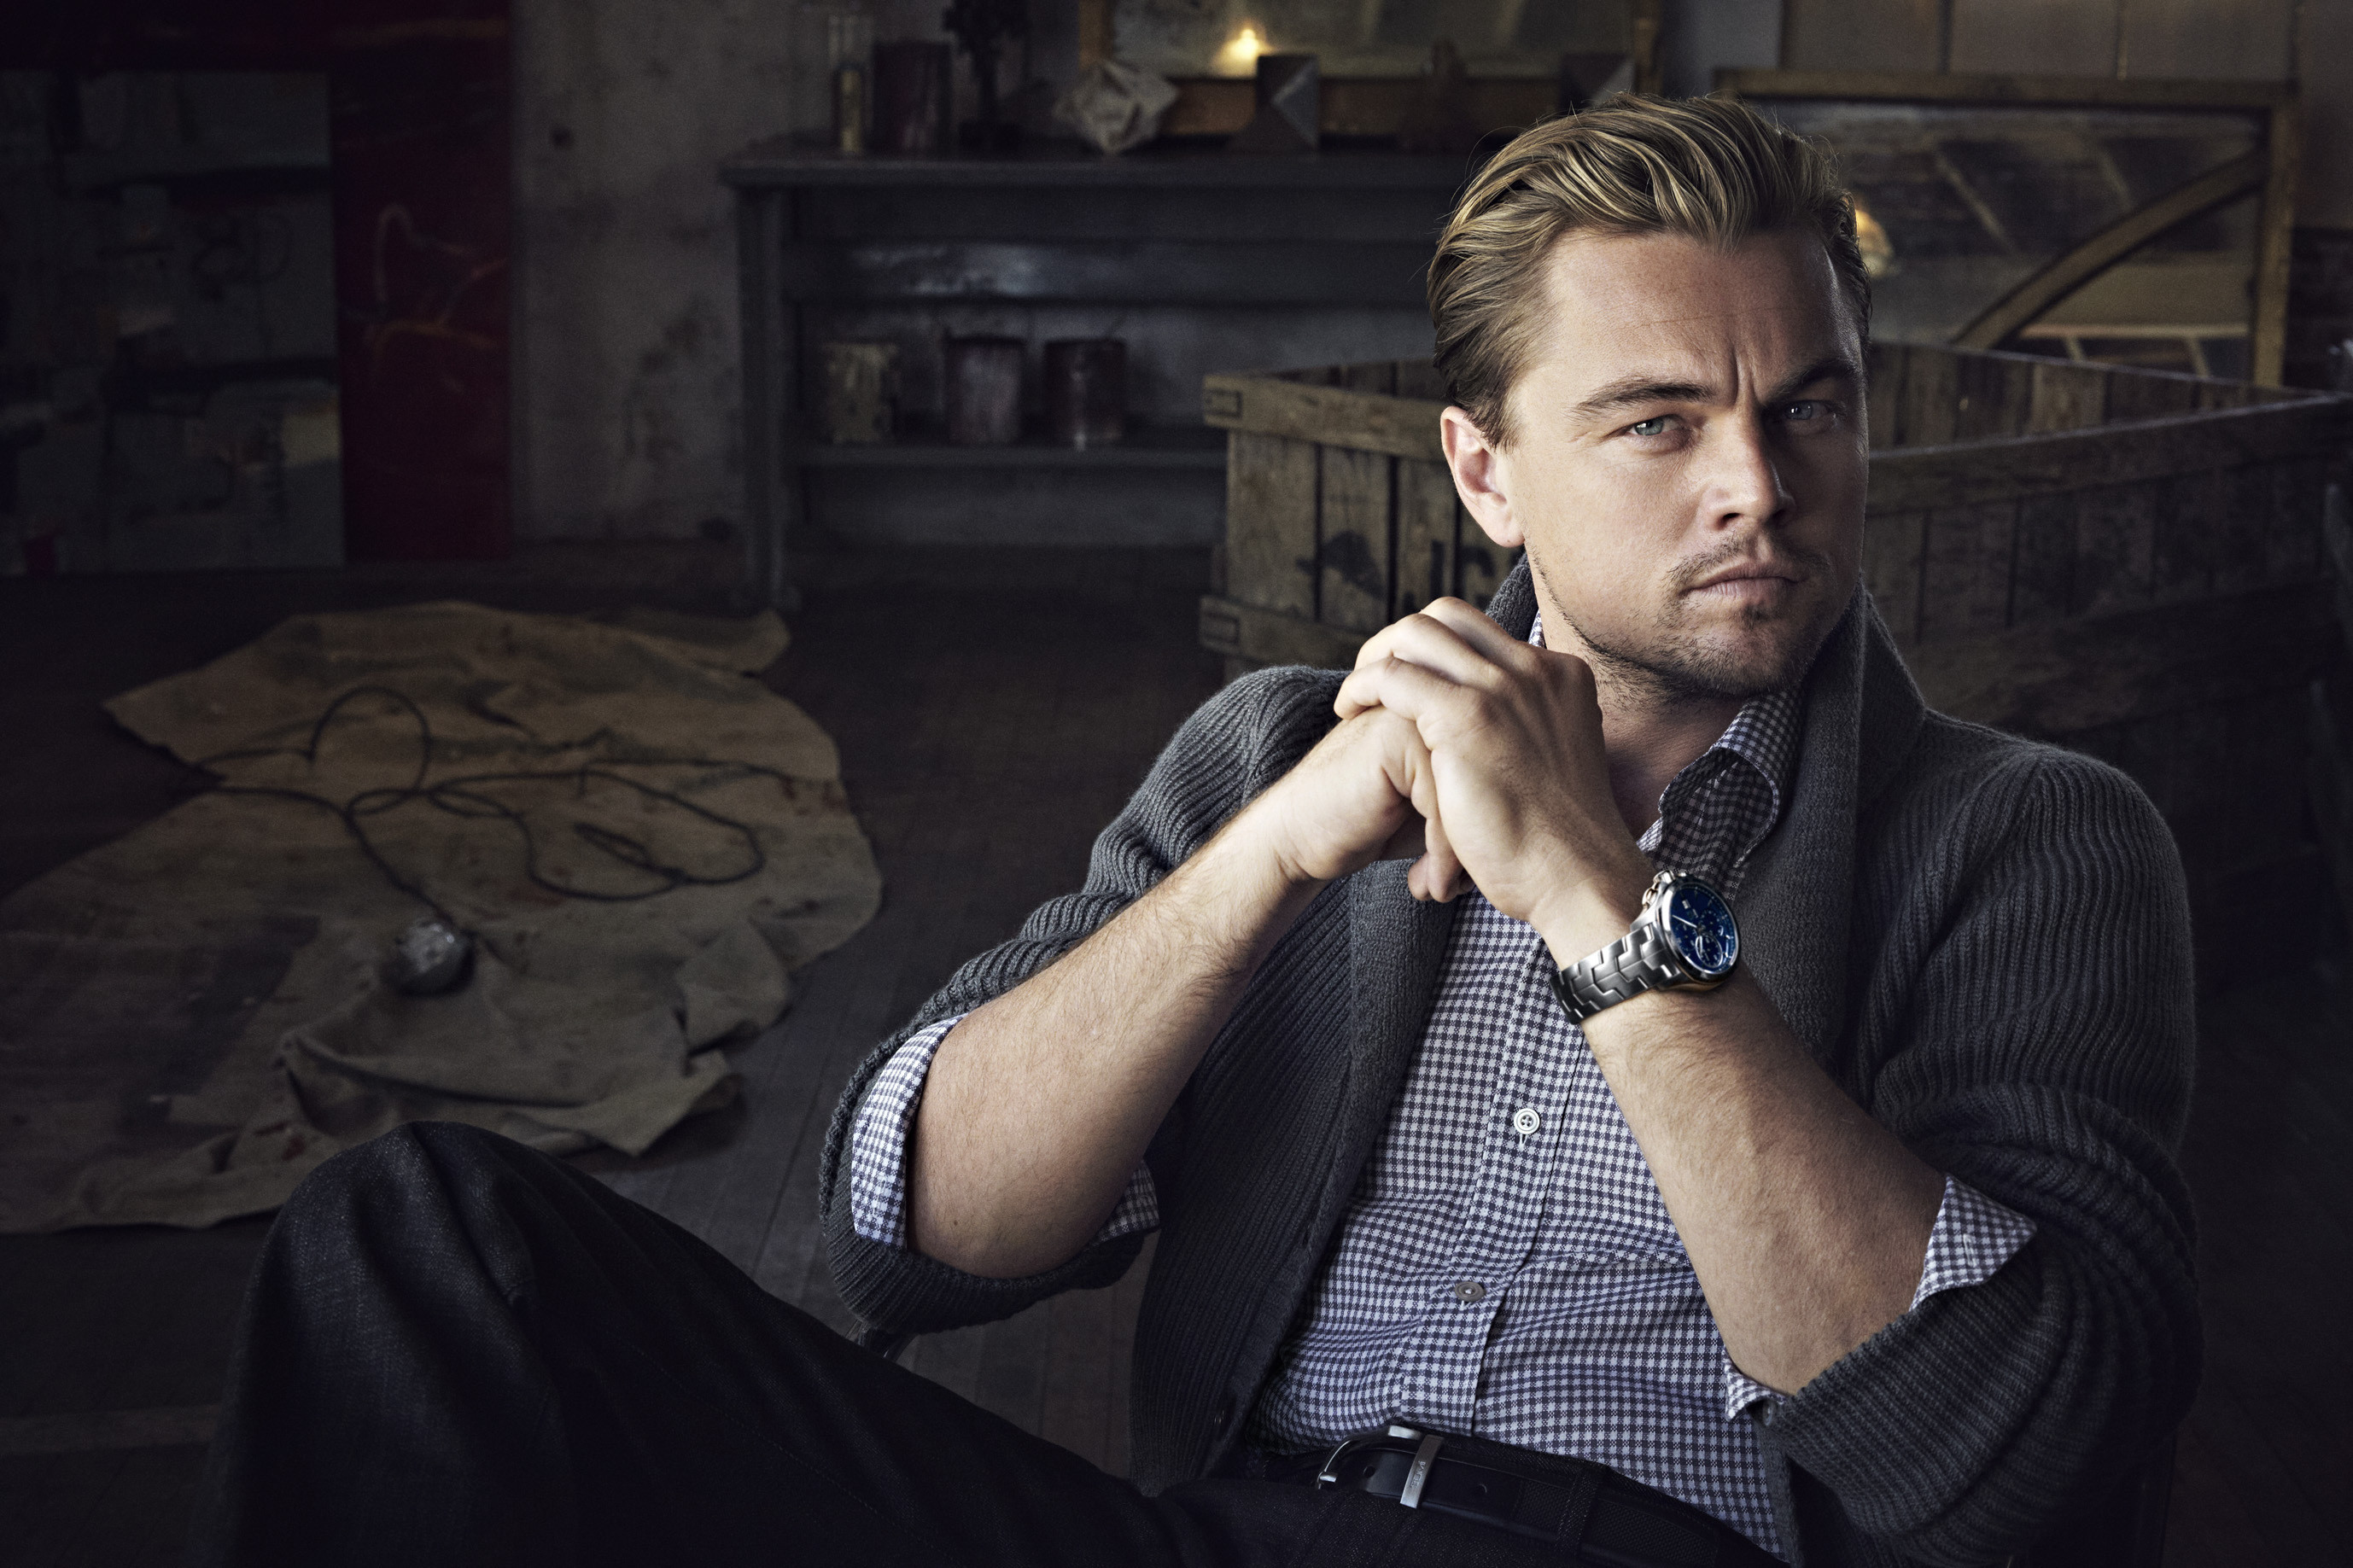 2756x1837 Celebrity - Leonardo Dicaprio Wallpaper